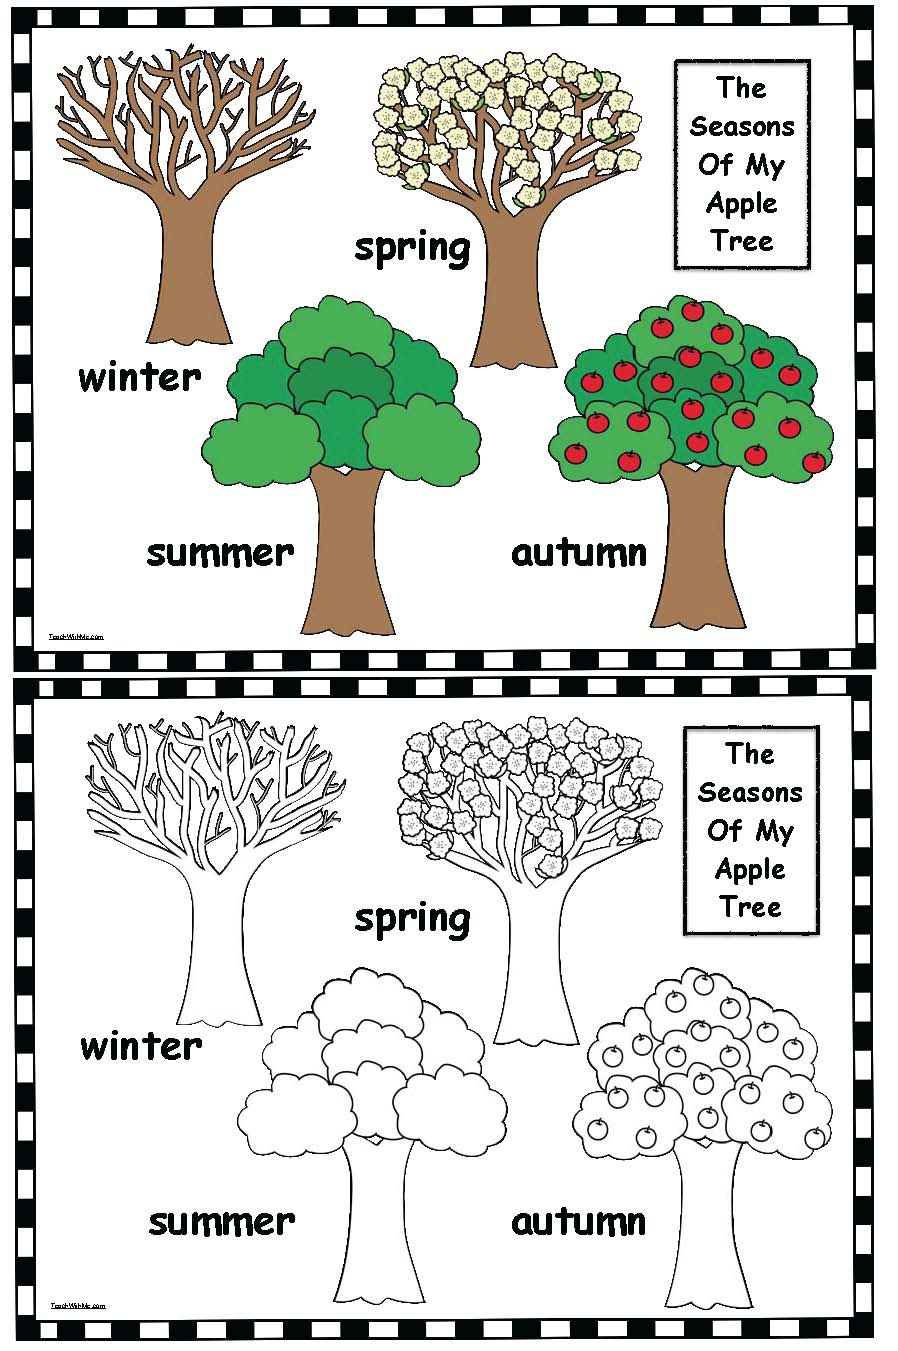 F D additionally F C Dd D Cc Ebd Ff E D L also C Dfe Abff C further  also Addition Without Carrying Worksheet Thumbnail B F Eaf F Bc C Ebb A X. on weather in 4 seasons worksheet